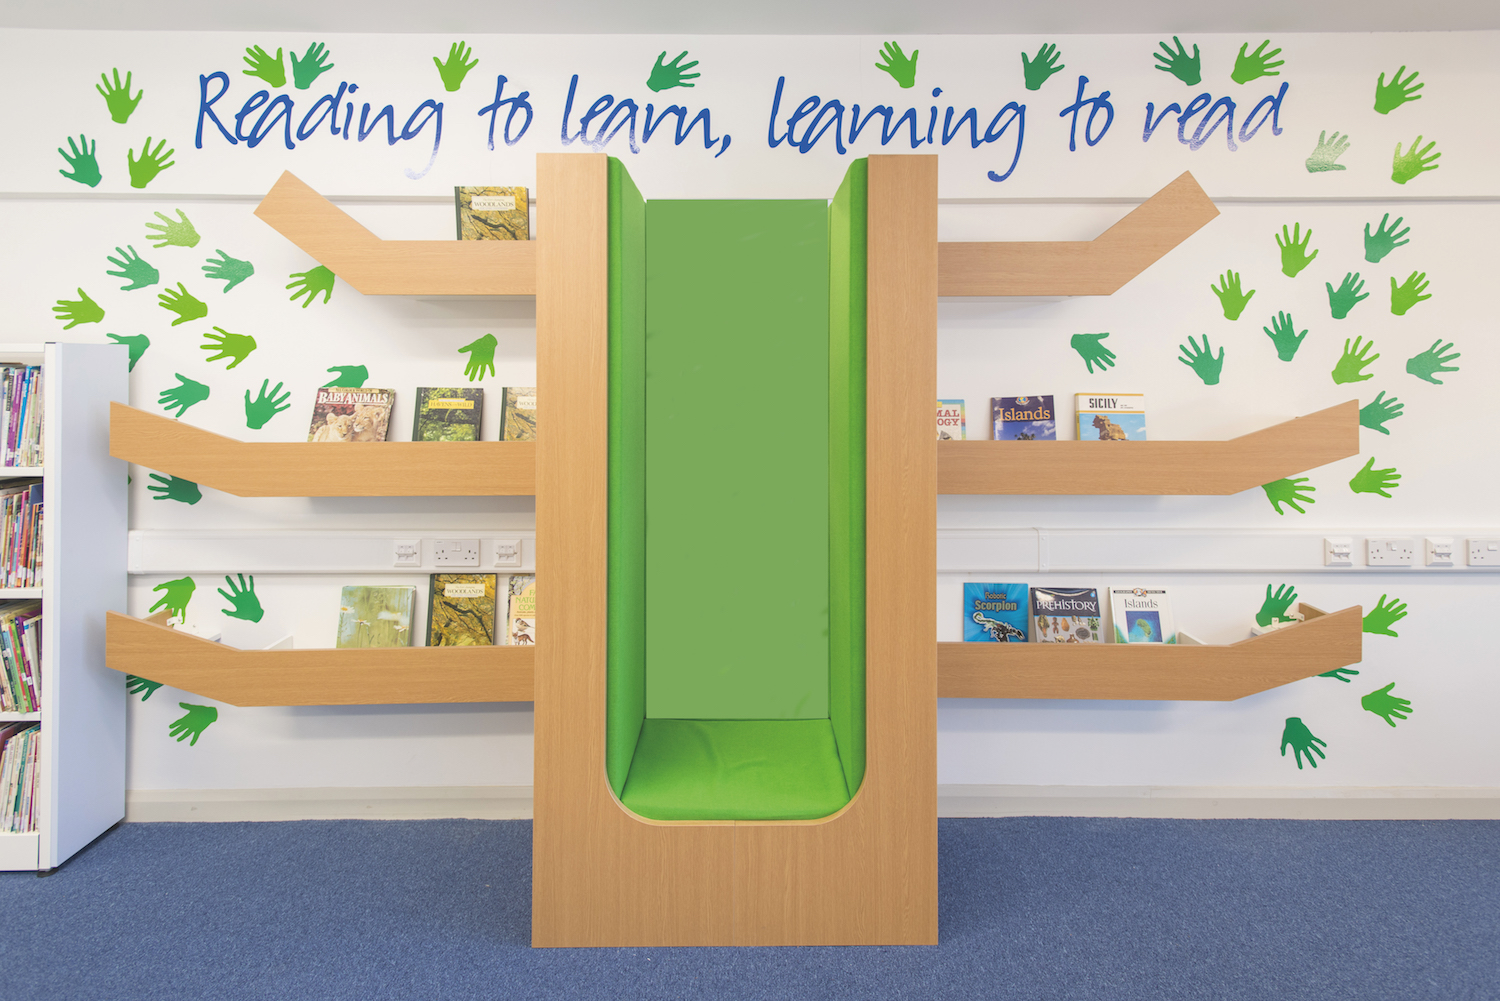 Woodland themed reading booth with vinyl hand prints in shades of green, mimicking tree leaves.